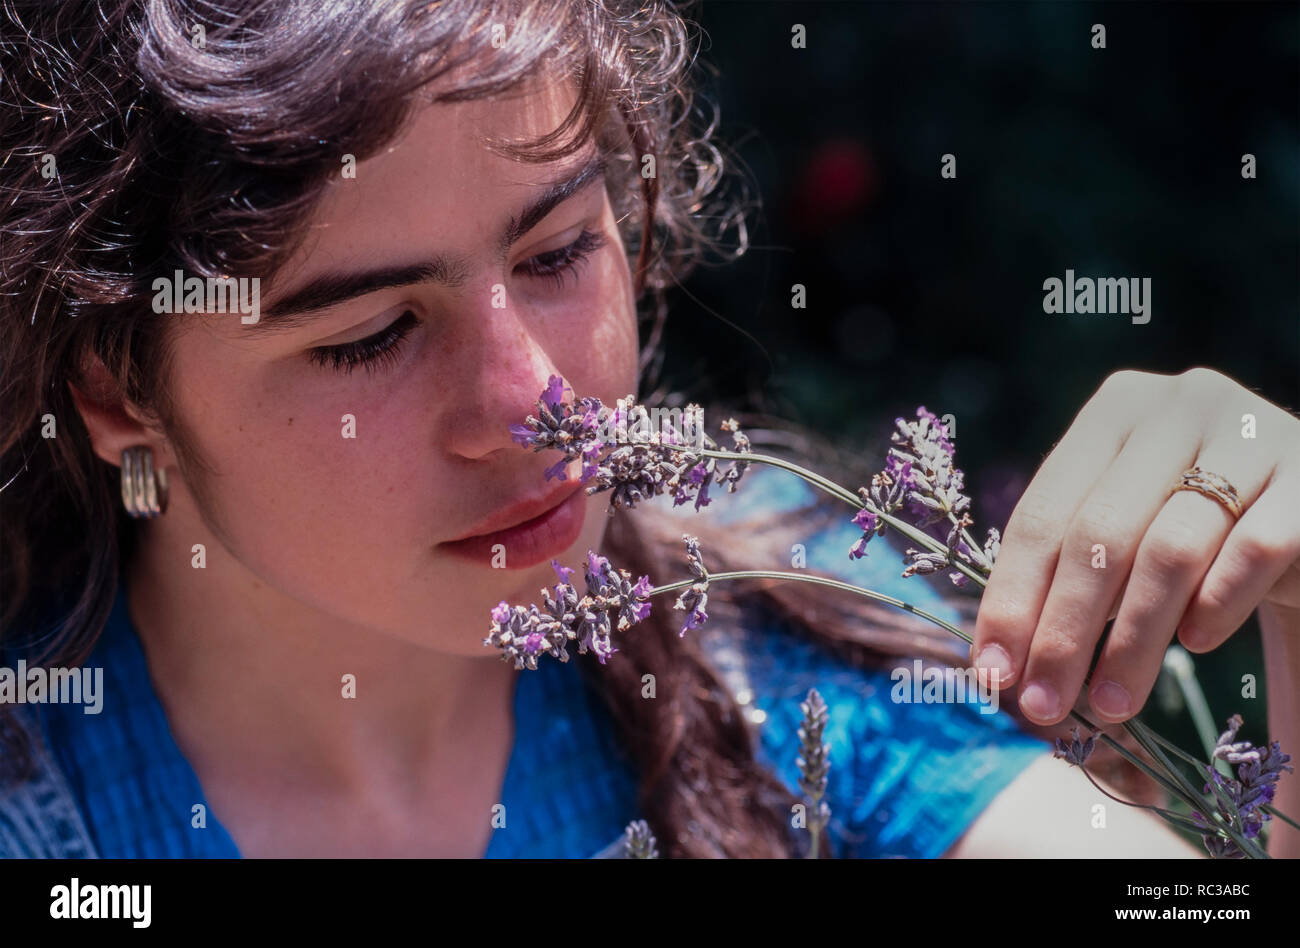 Young woman smelling lavender flowers. Portugal - Stock Image